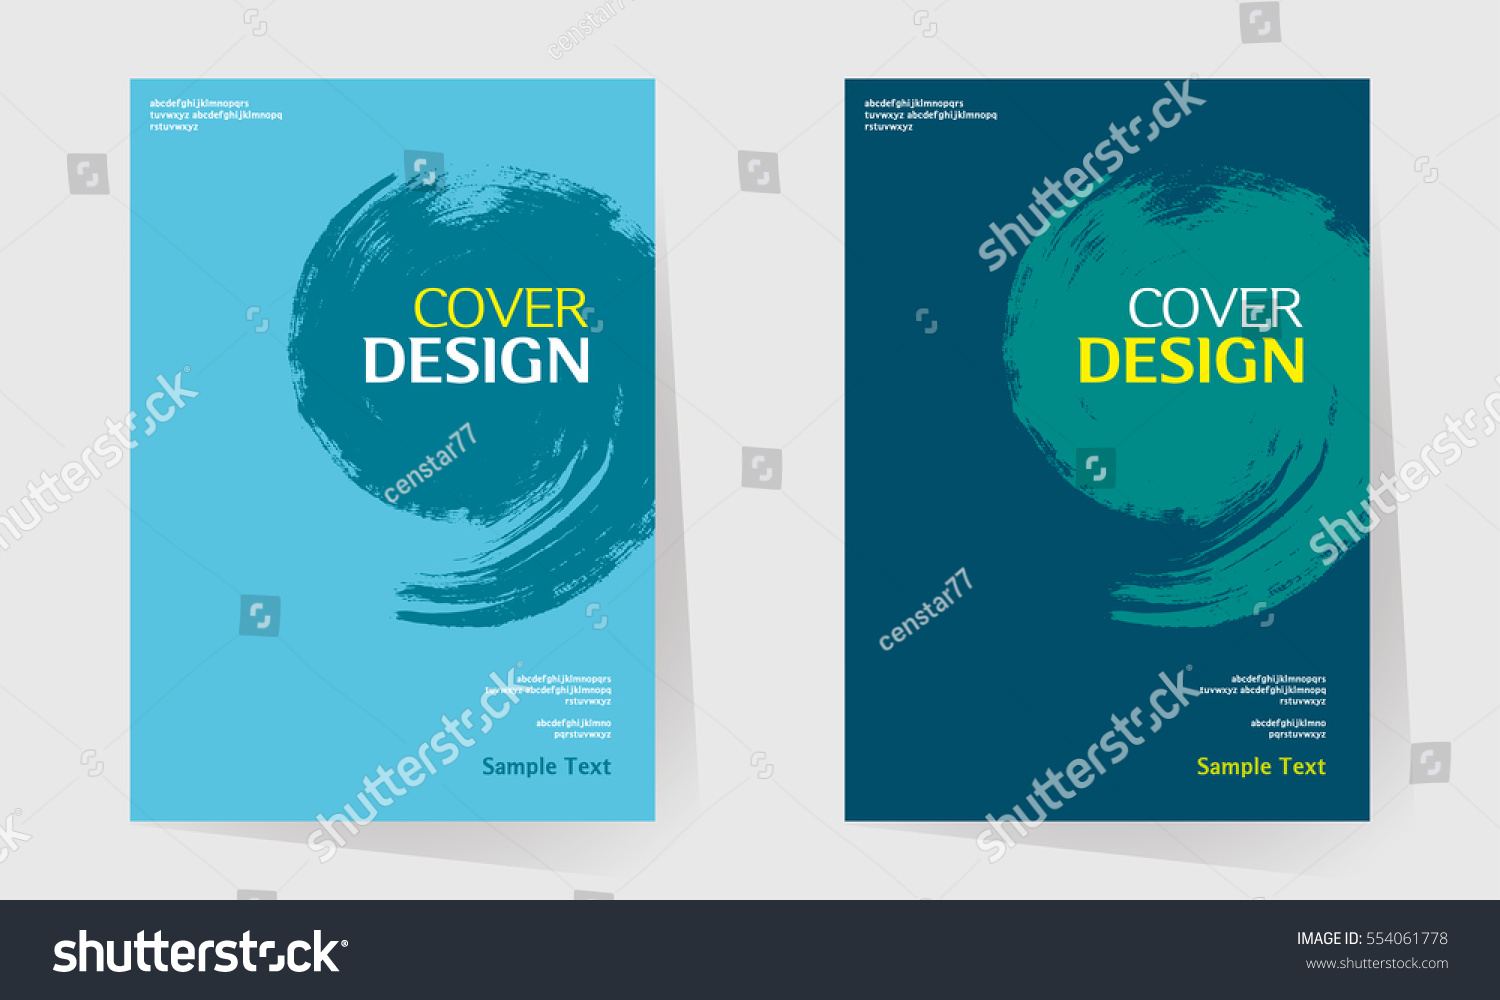 How To Make A Book Cover In Paint : Book cover design vector template a stock